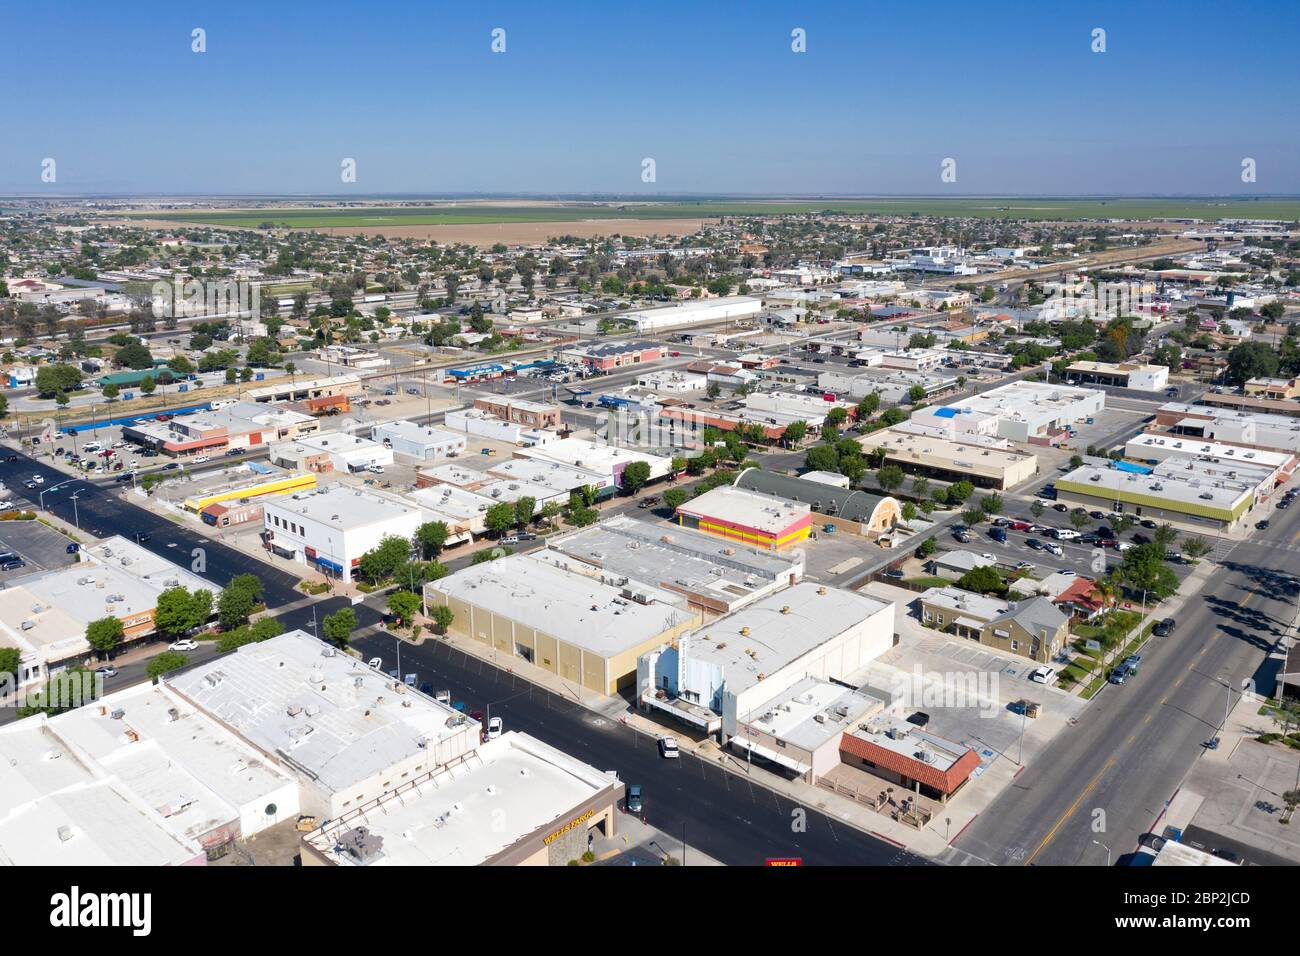 Delano California High Resolution Stock Photography And Images Alamy